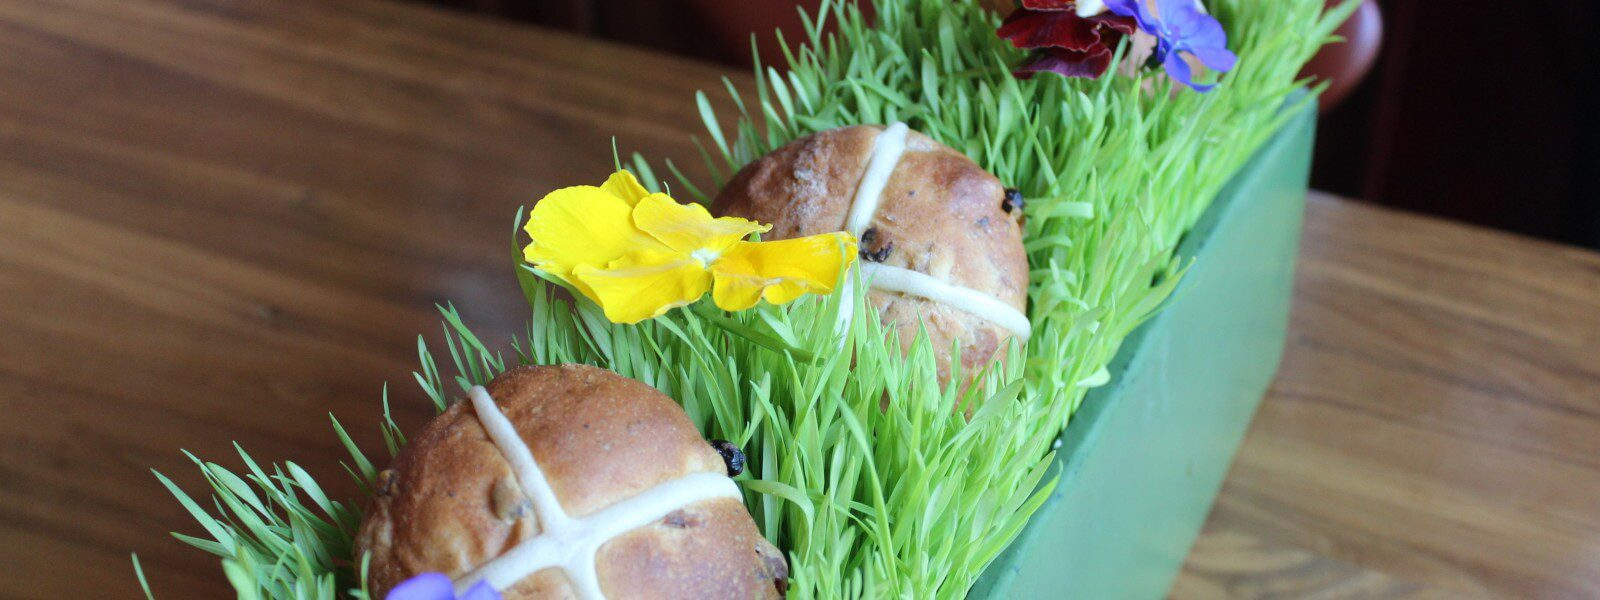 Hot cross buns ne a planter with grass and violets.